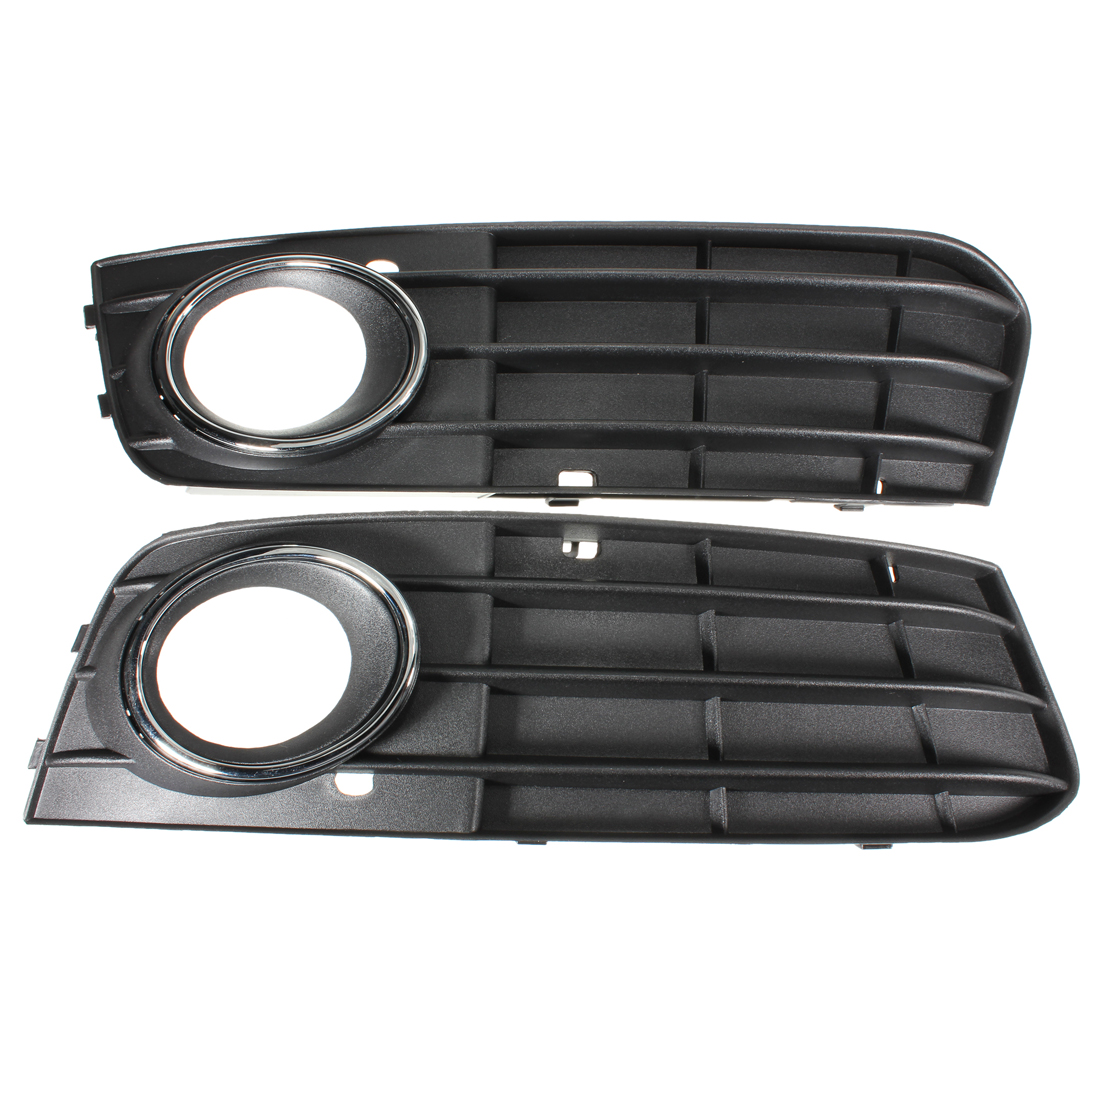 2Pcs Car Front Bumper Fog Light Grille Grill Cover for <font><b>Audi</b></font> <font><b>A4</b></font> B8 A4L 2009 2010 2011 <font><b>2012</b></font> 8KD 807 681 01C /8KD 807 682 01C image